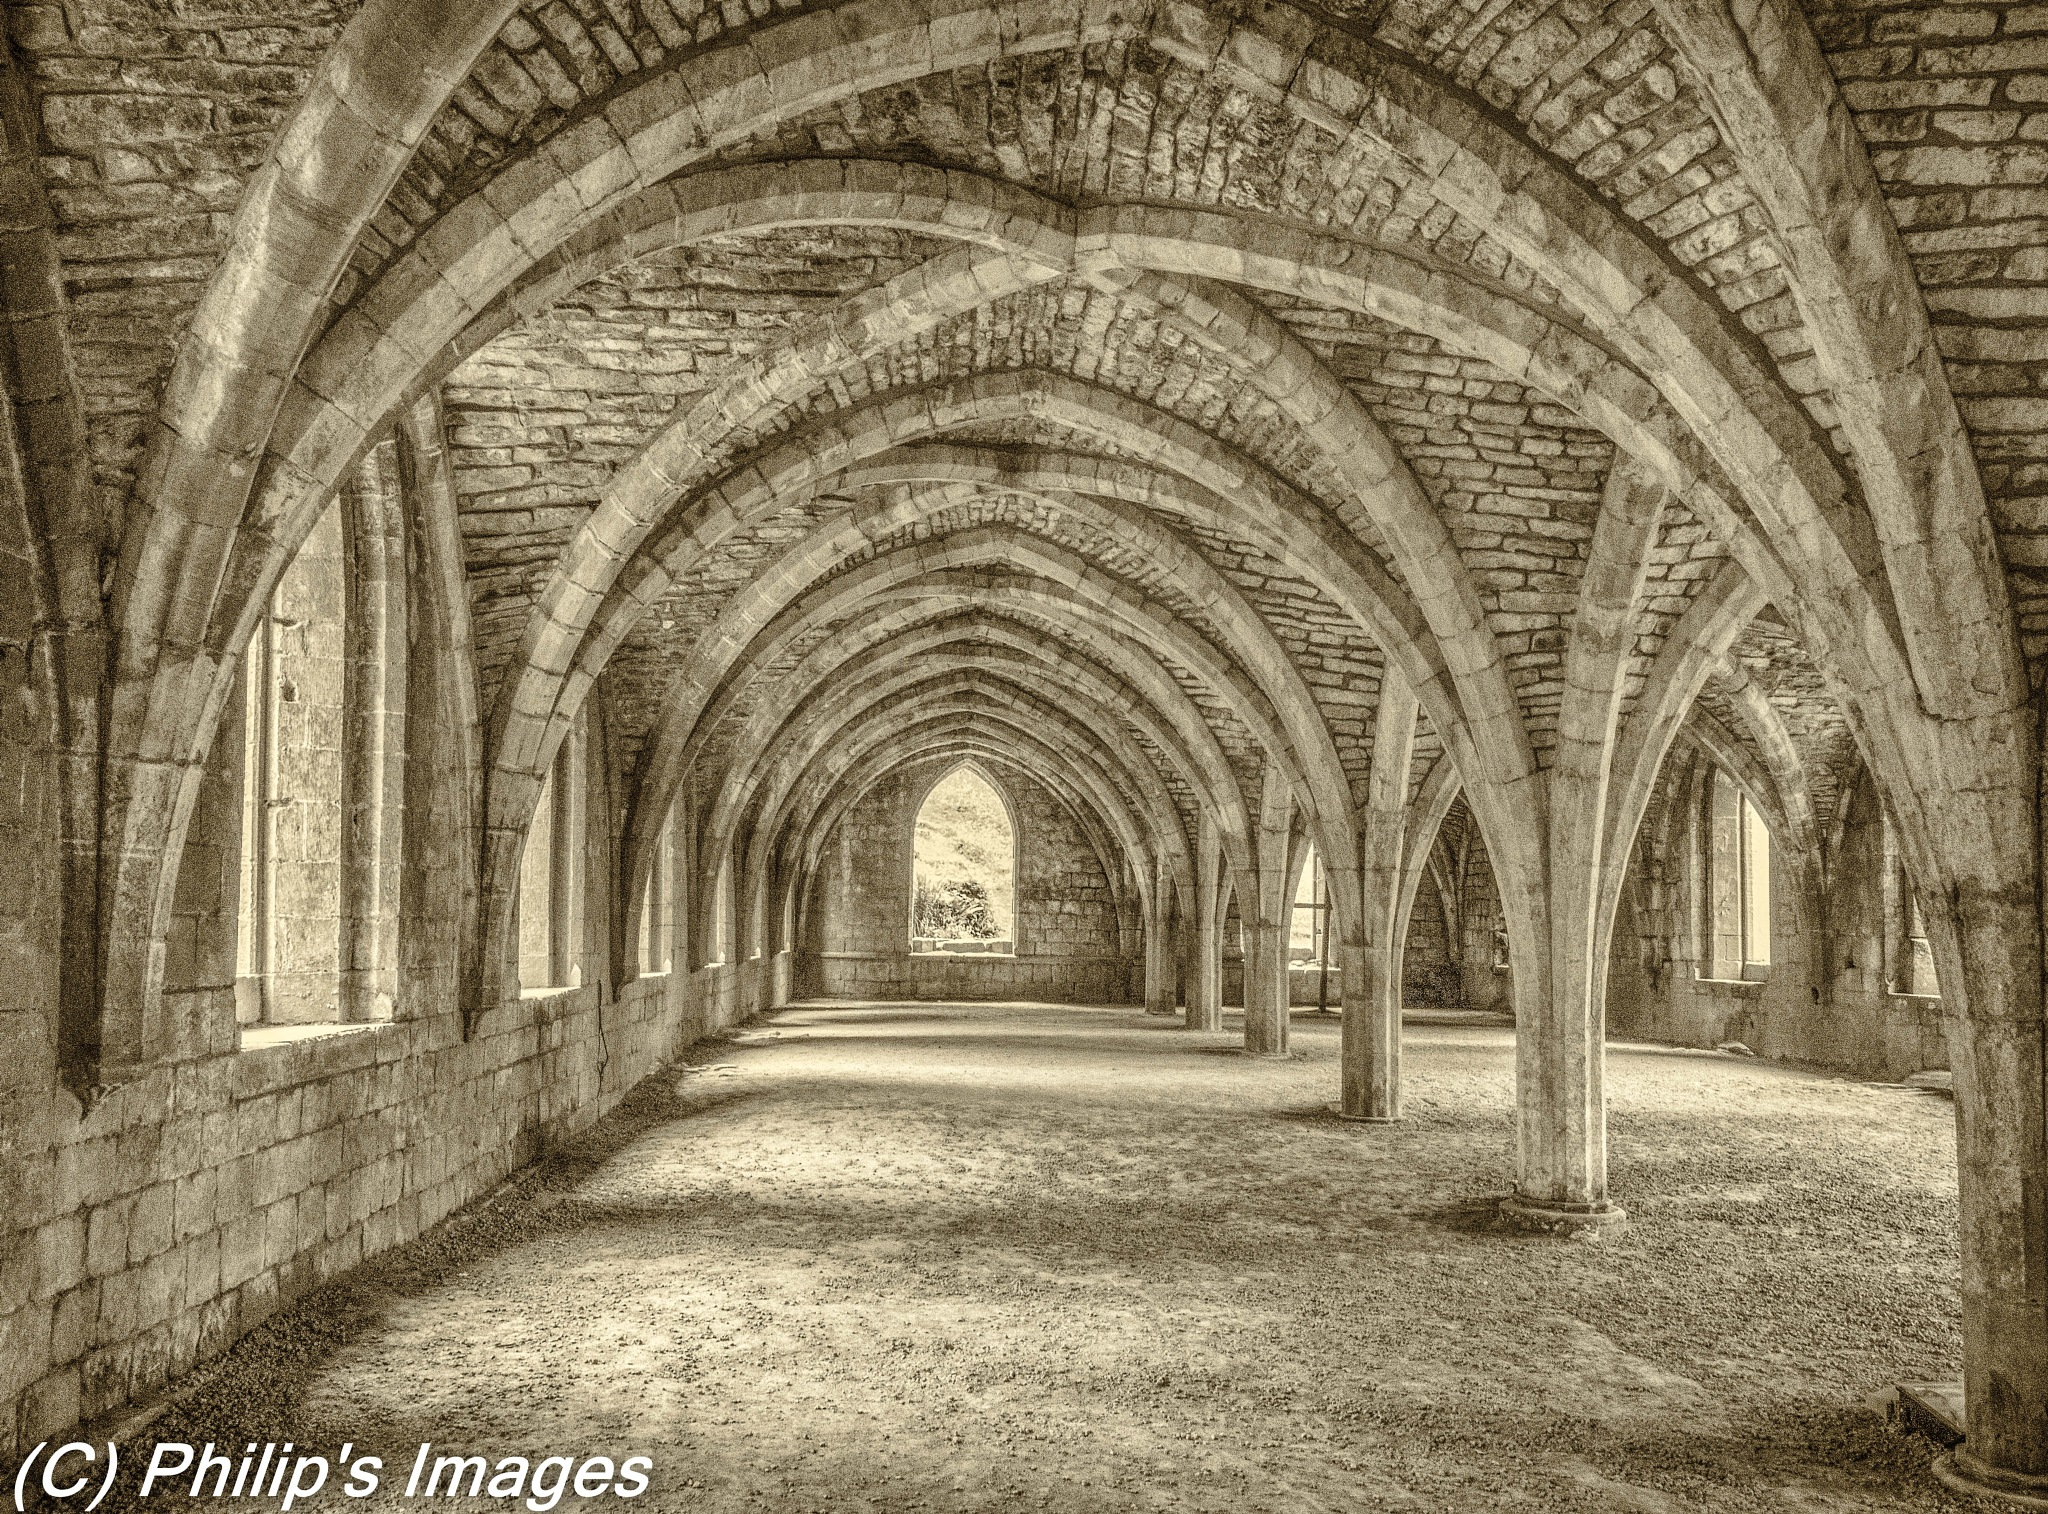 The Arches by philips images